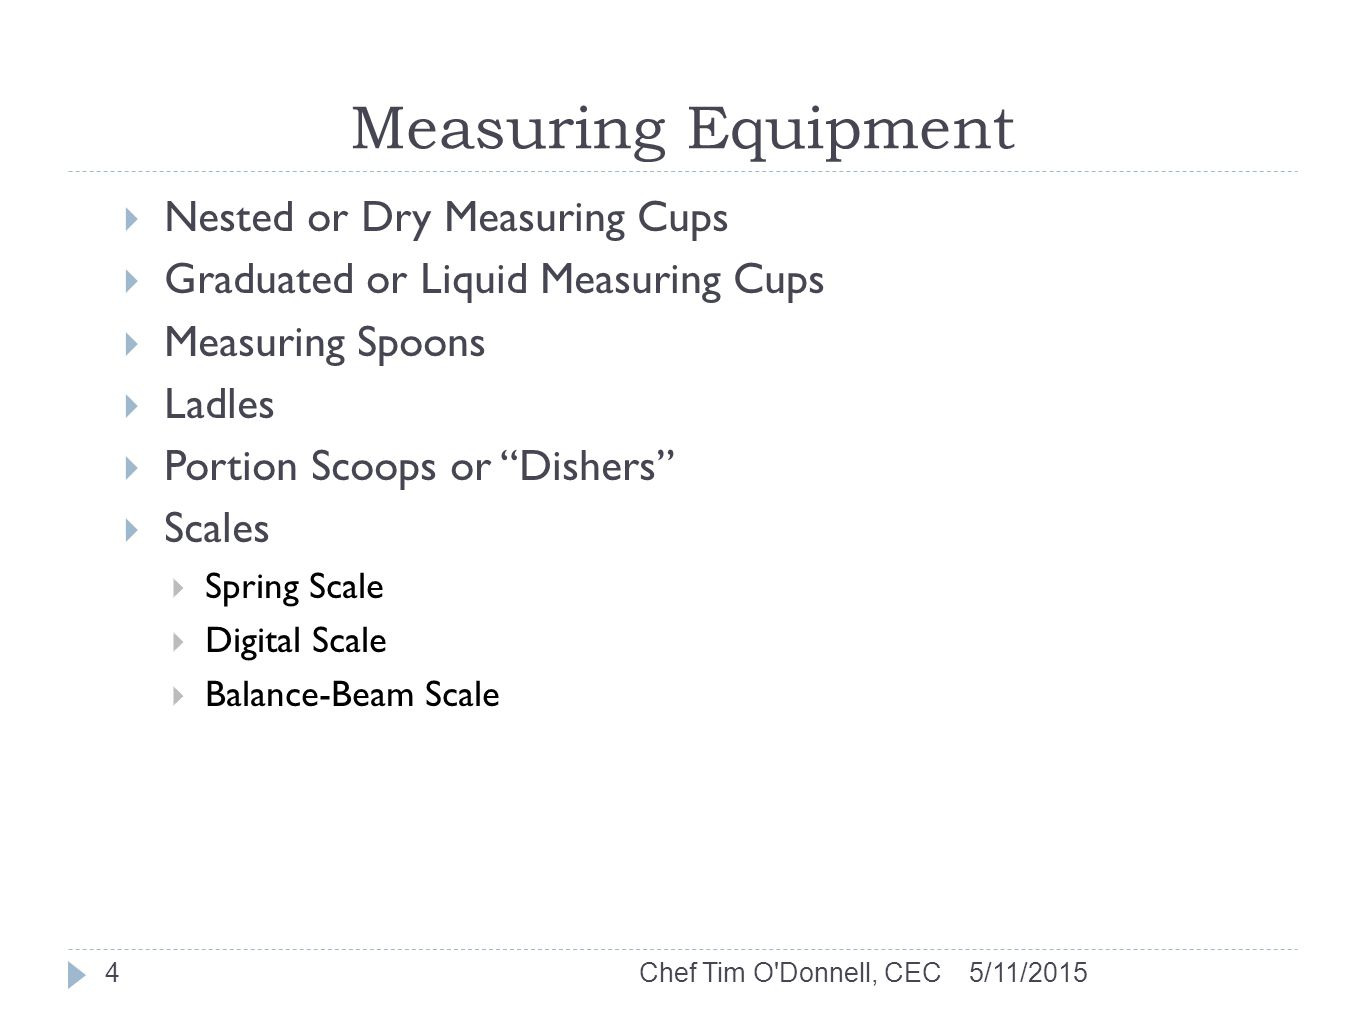 Measuring Equipment 5/11/2015Chef Tim O Donnell, CEC4  Nested or Dry Measuring Cups  Graduated or Liquid Measuring Cups  Measuring Spoons  Ladles  Portion Scoops or Dishers  Scales  Spring Scale  Digital Scale  Balance-Beam Scale